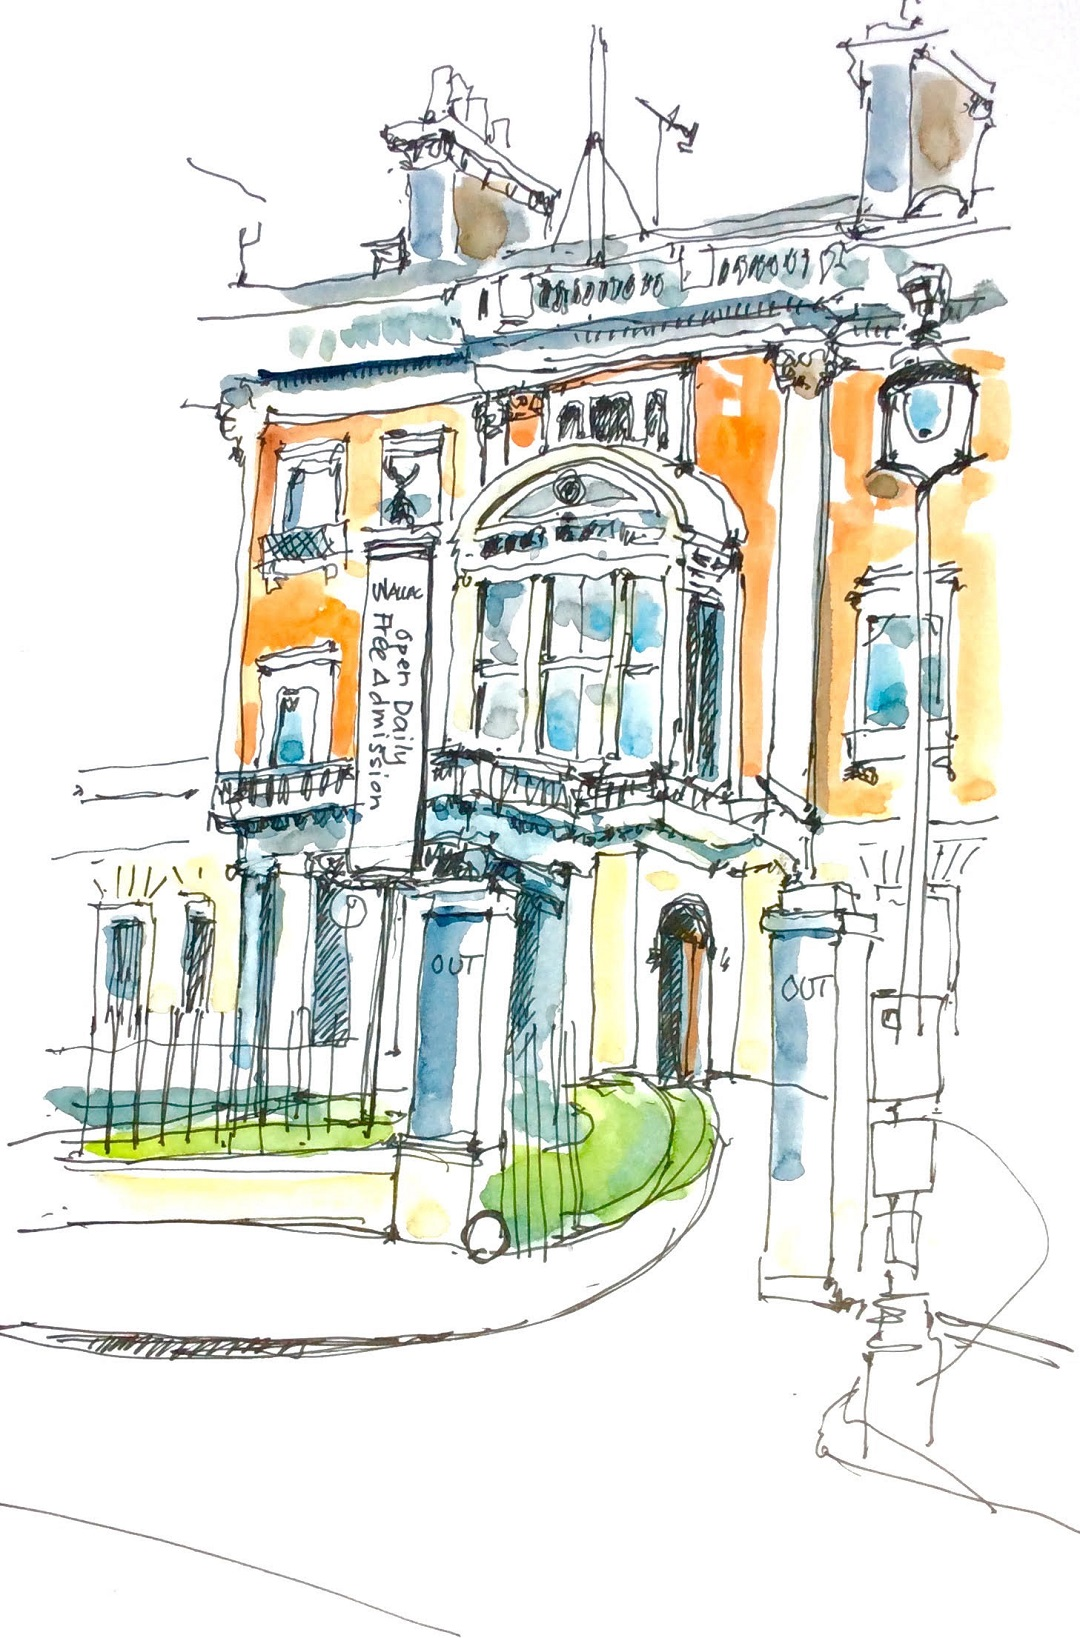 Wallace Collection, London, February 2016 Katie Clare Pen and wash, drawn in the artist's Moleskine watercolour sketchbook, 13 x 21 cm